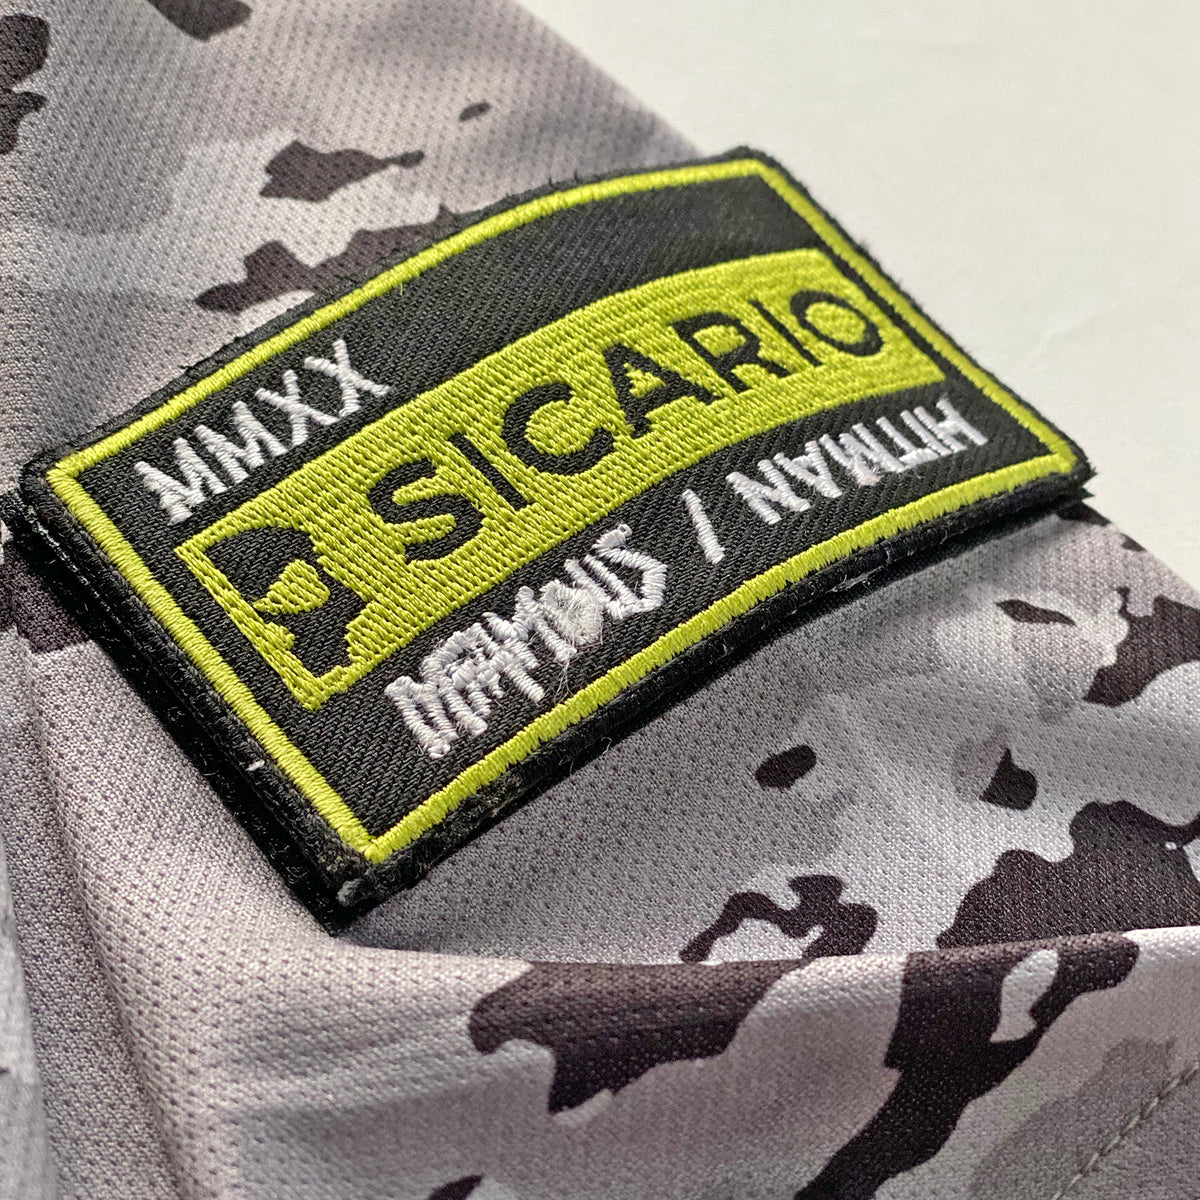 Sicario Member Package